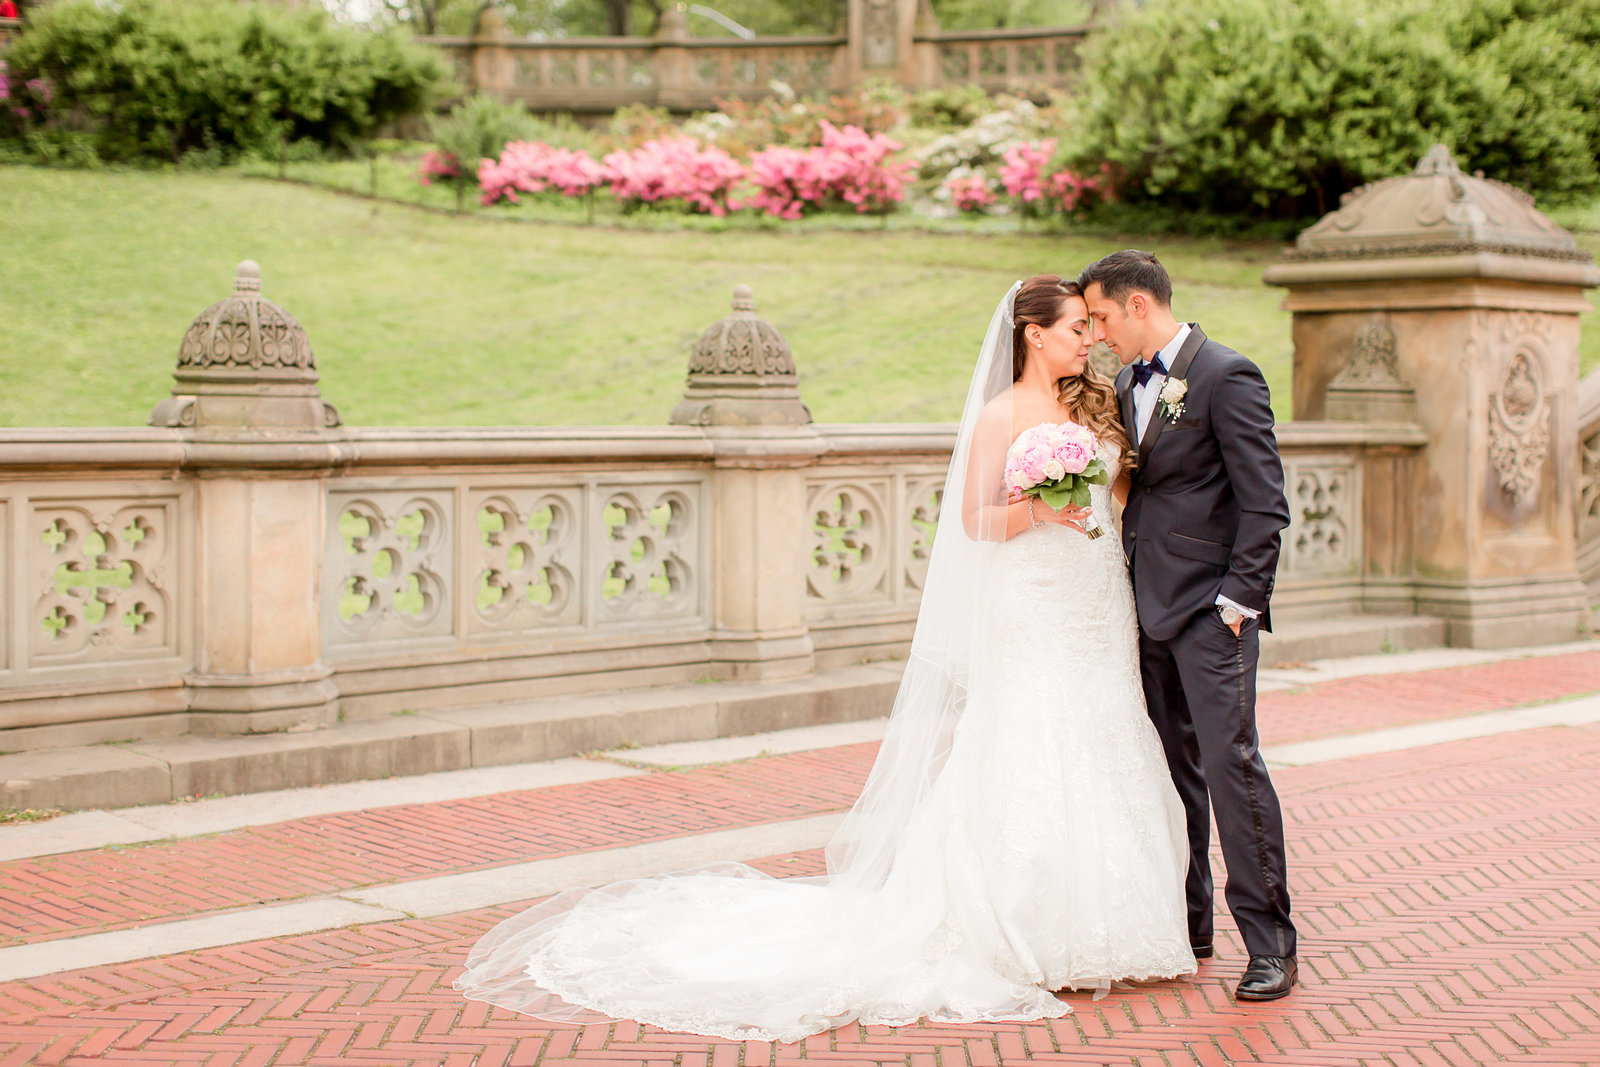 Romantic bride and groom photo at Bethesda Terrace in New York City